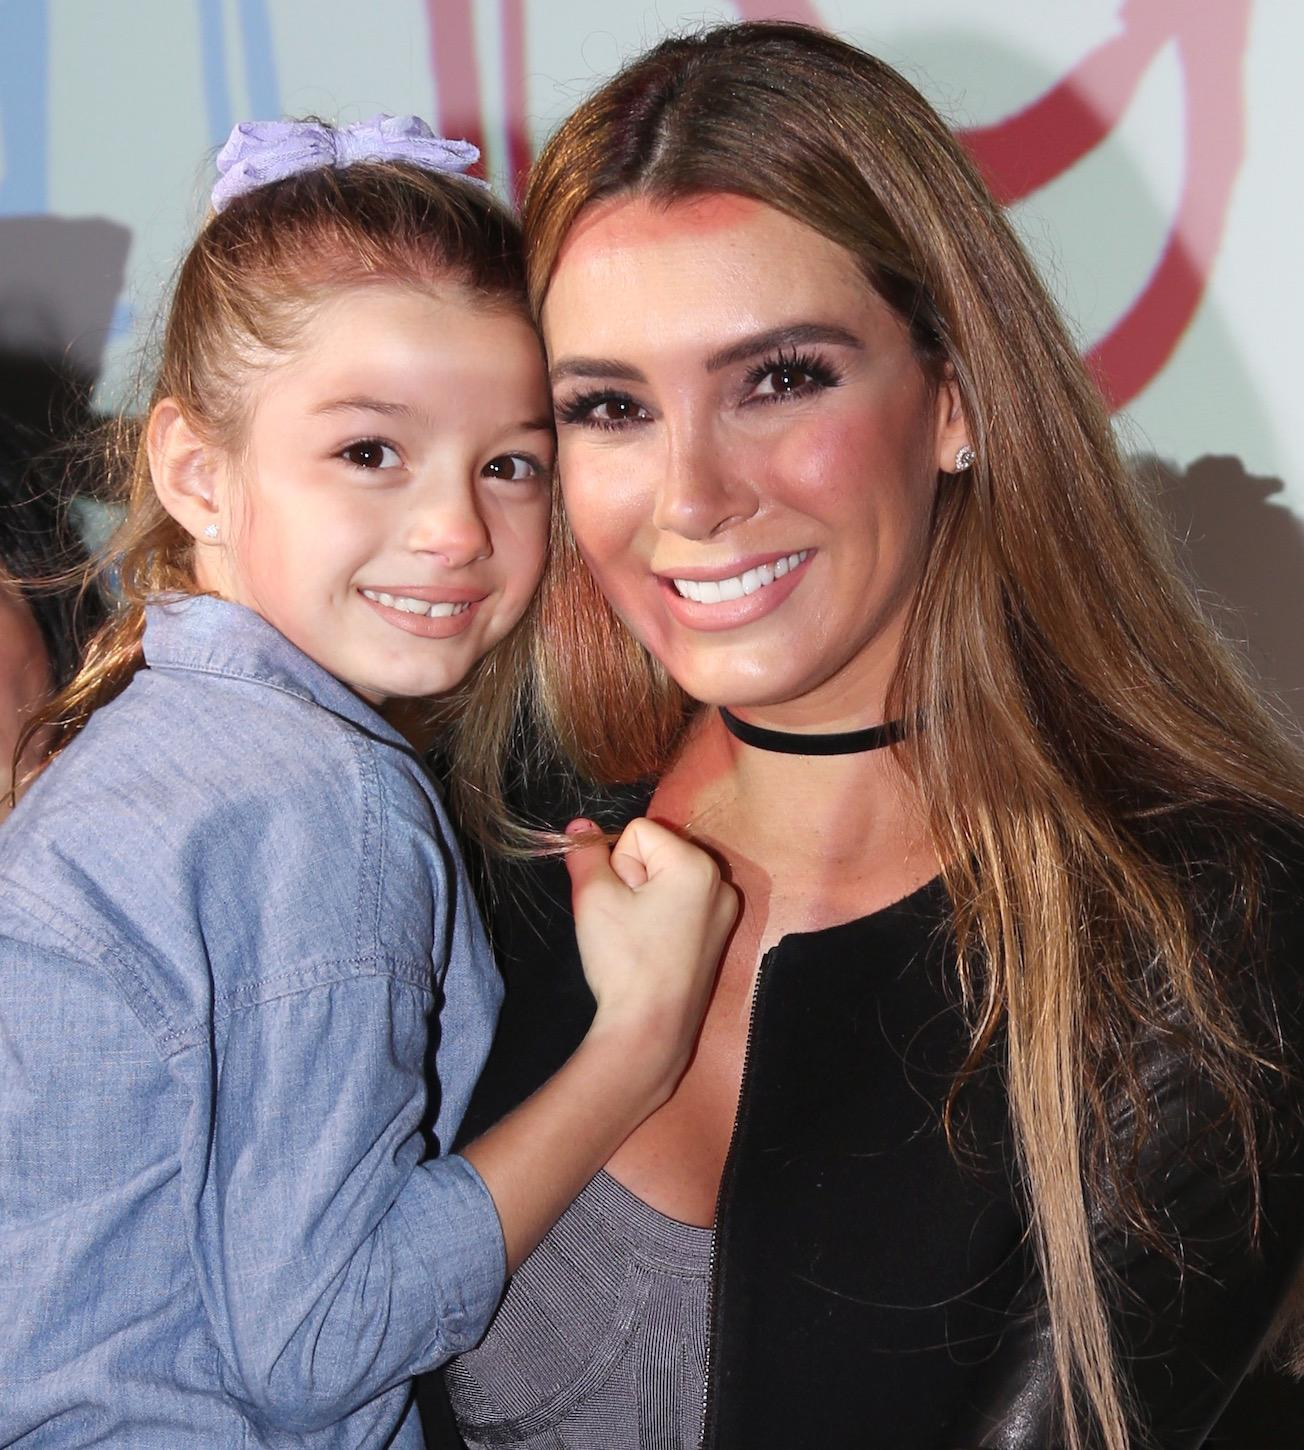 Discussion on this topic: Michele Deslauriers, elizabeth-gutierrez/